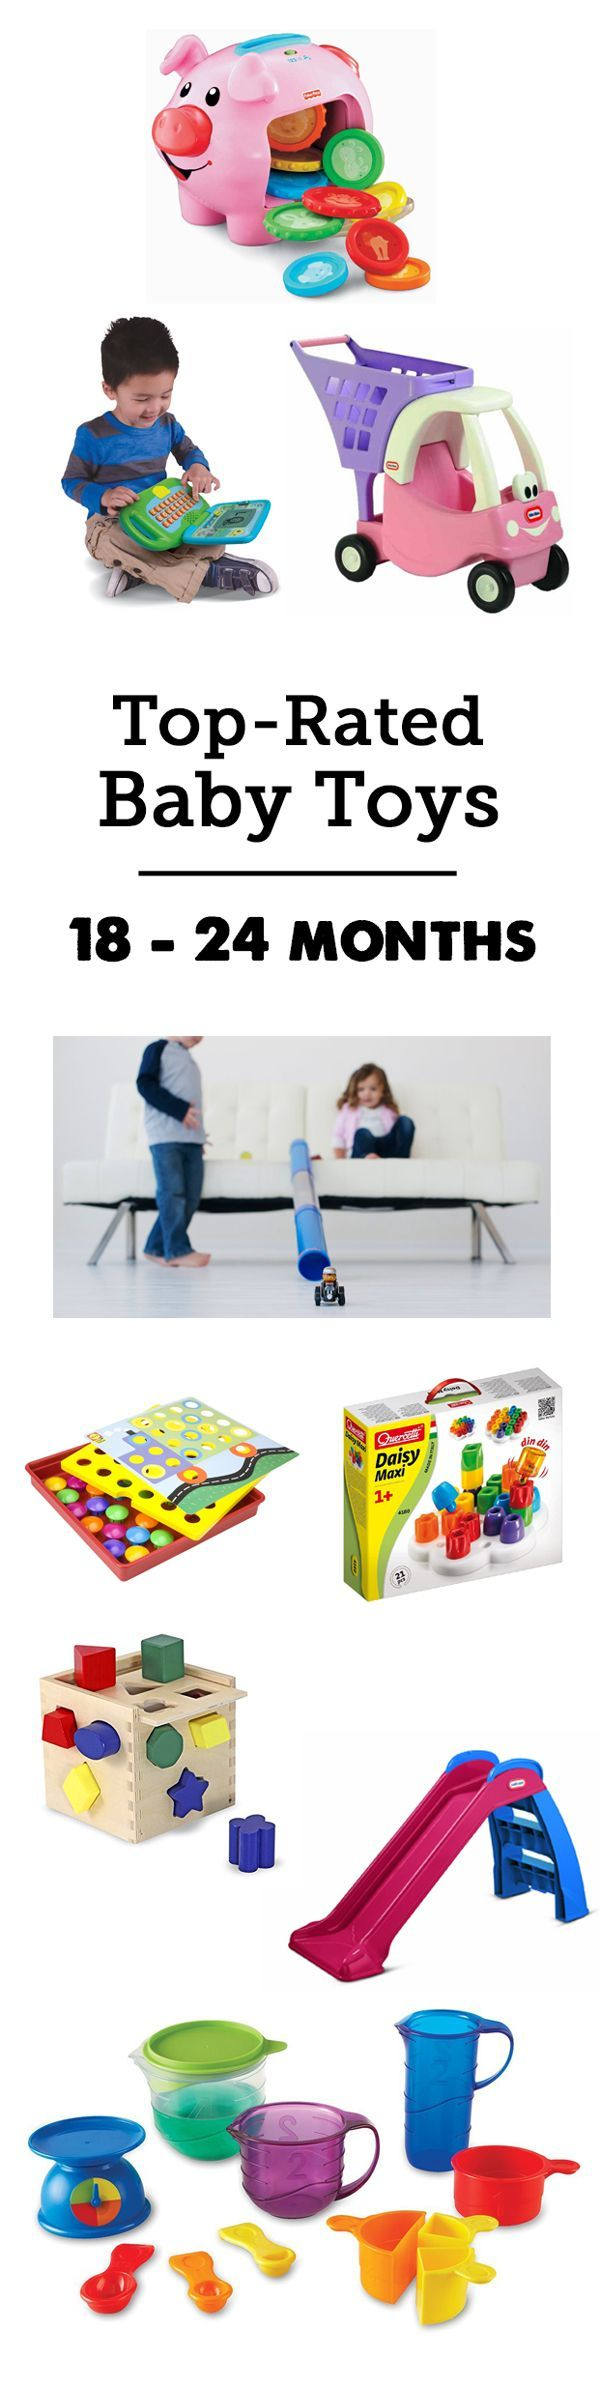 Toys For Girls 18 Months : Best images about toys for year old girls on